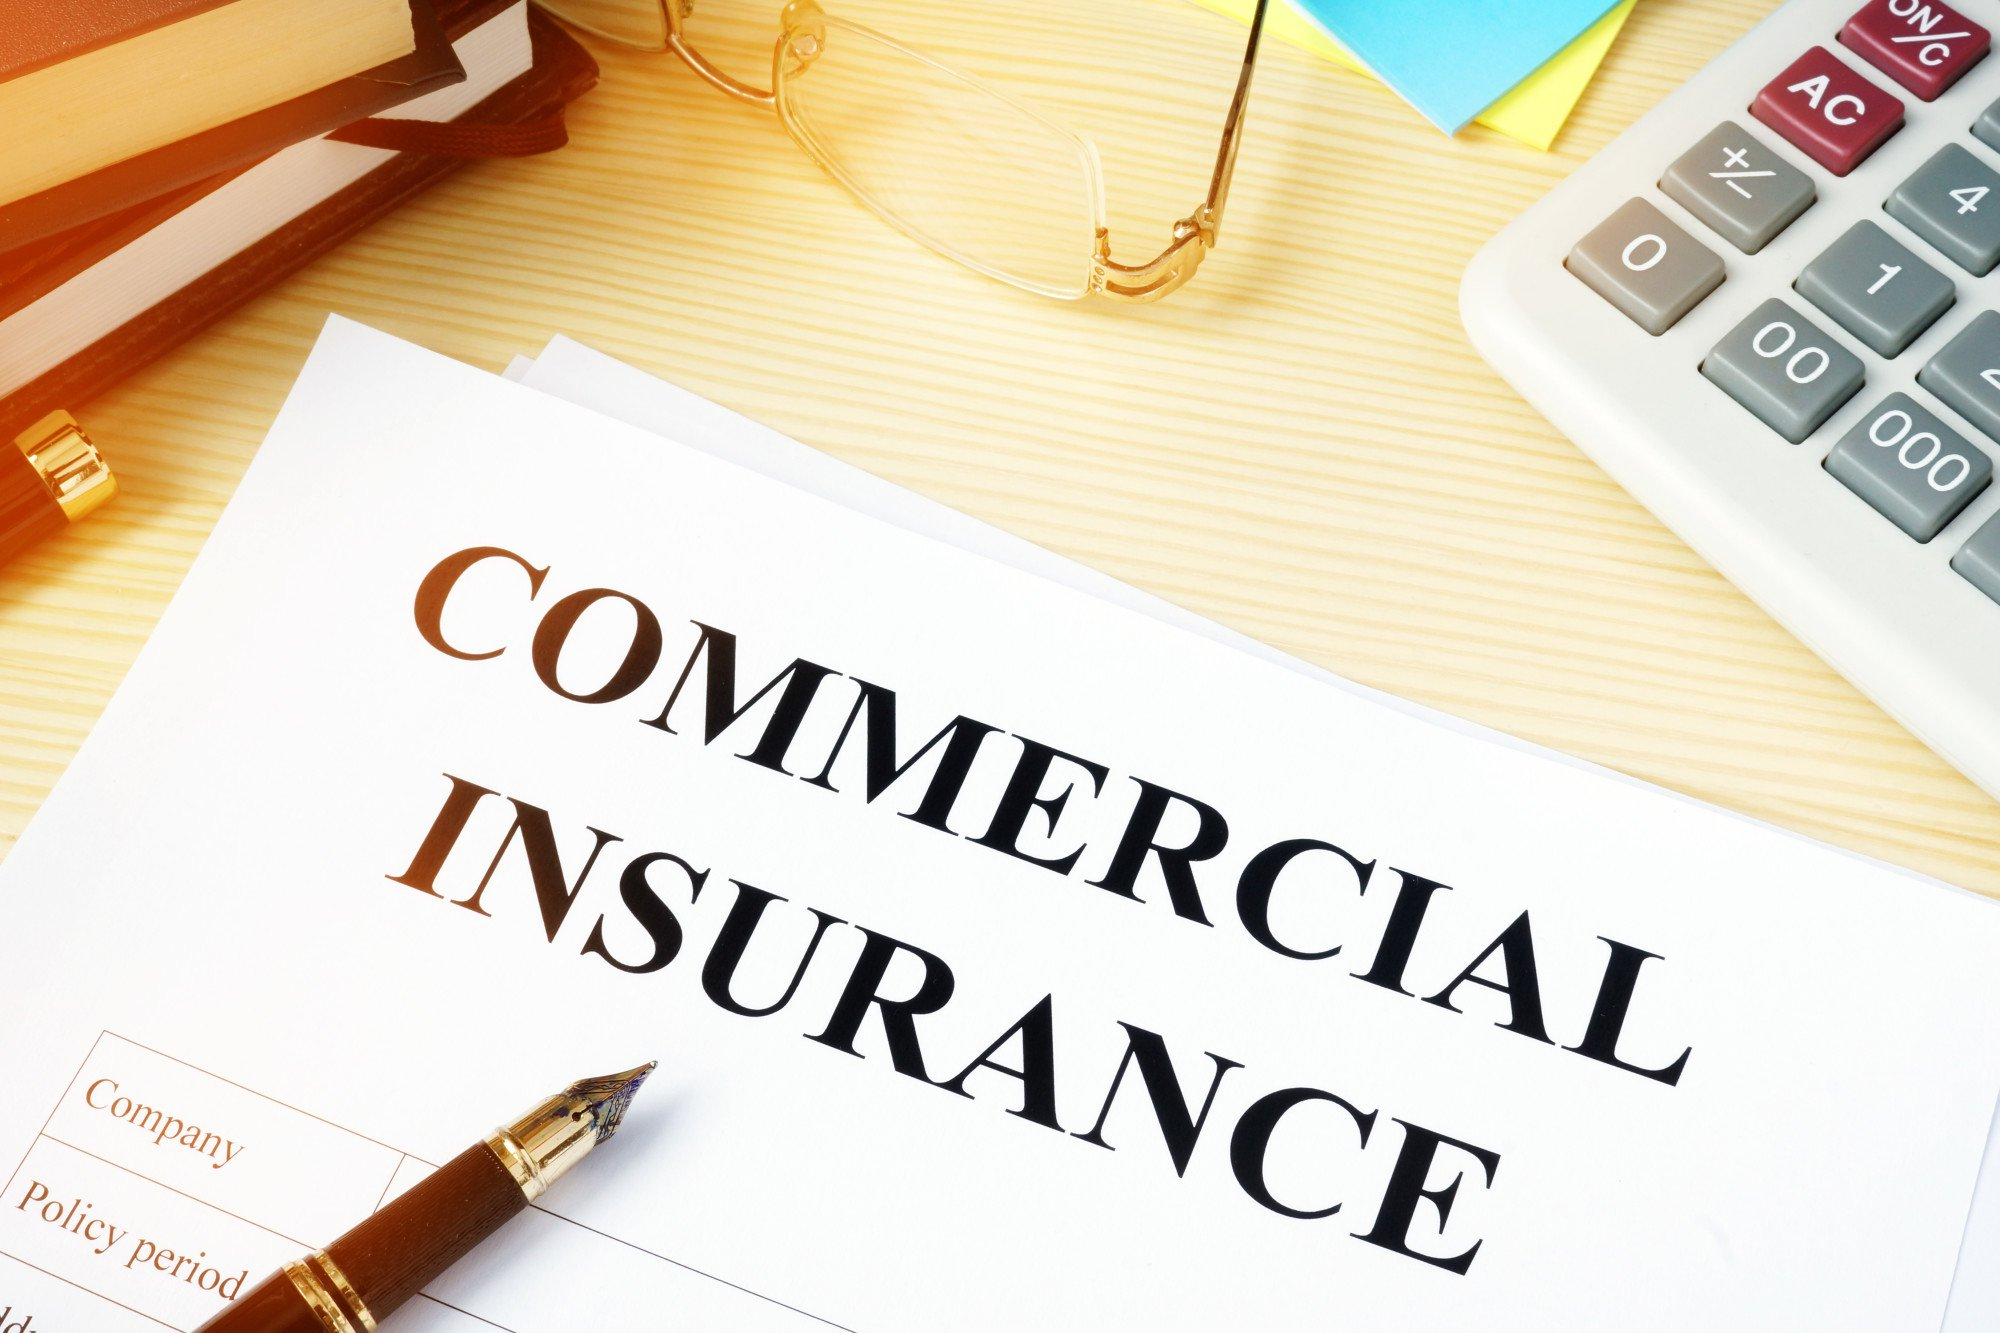 commercial and business insurance-min